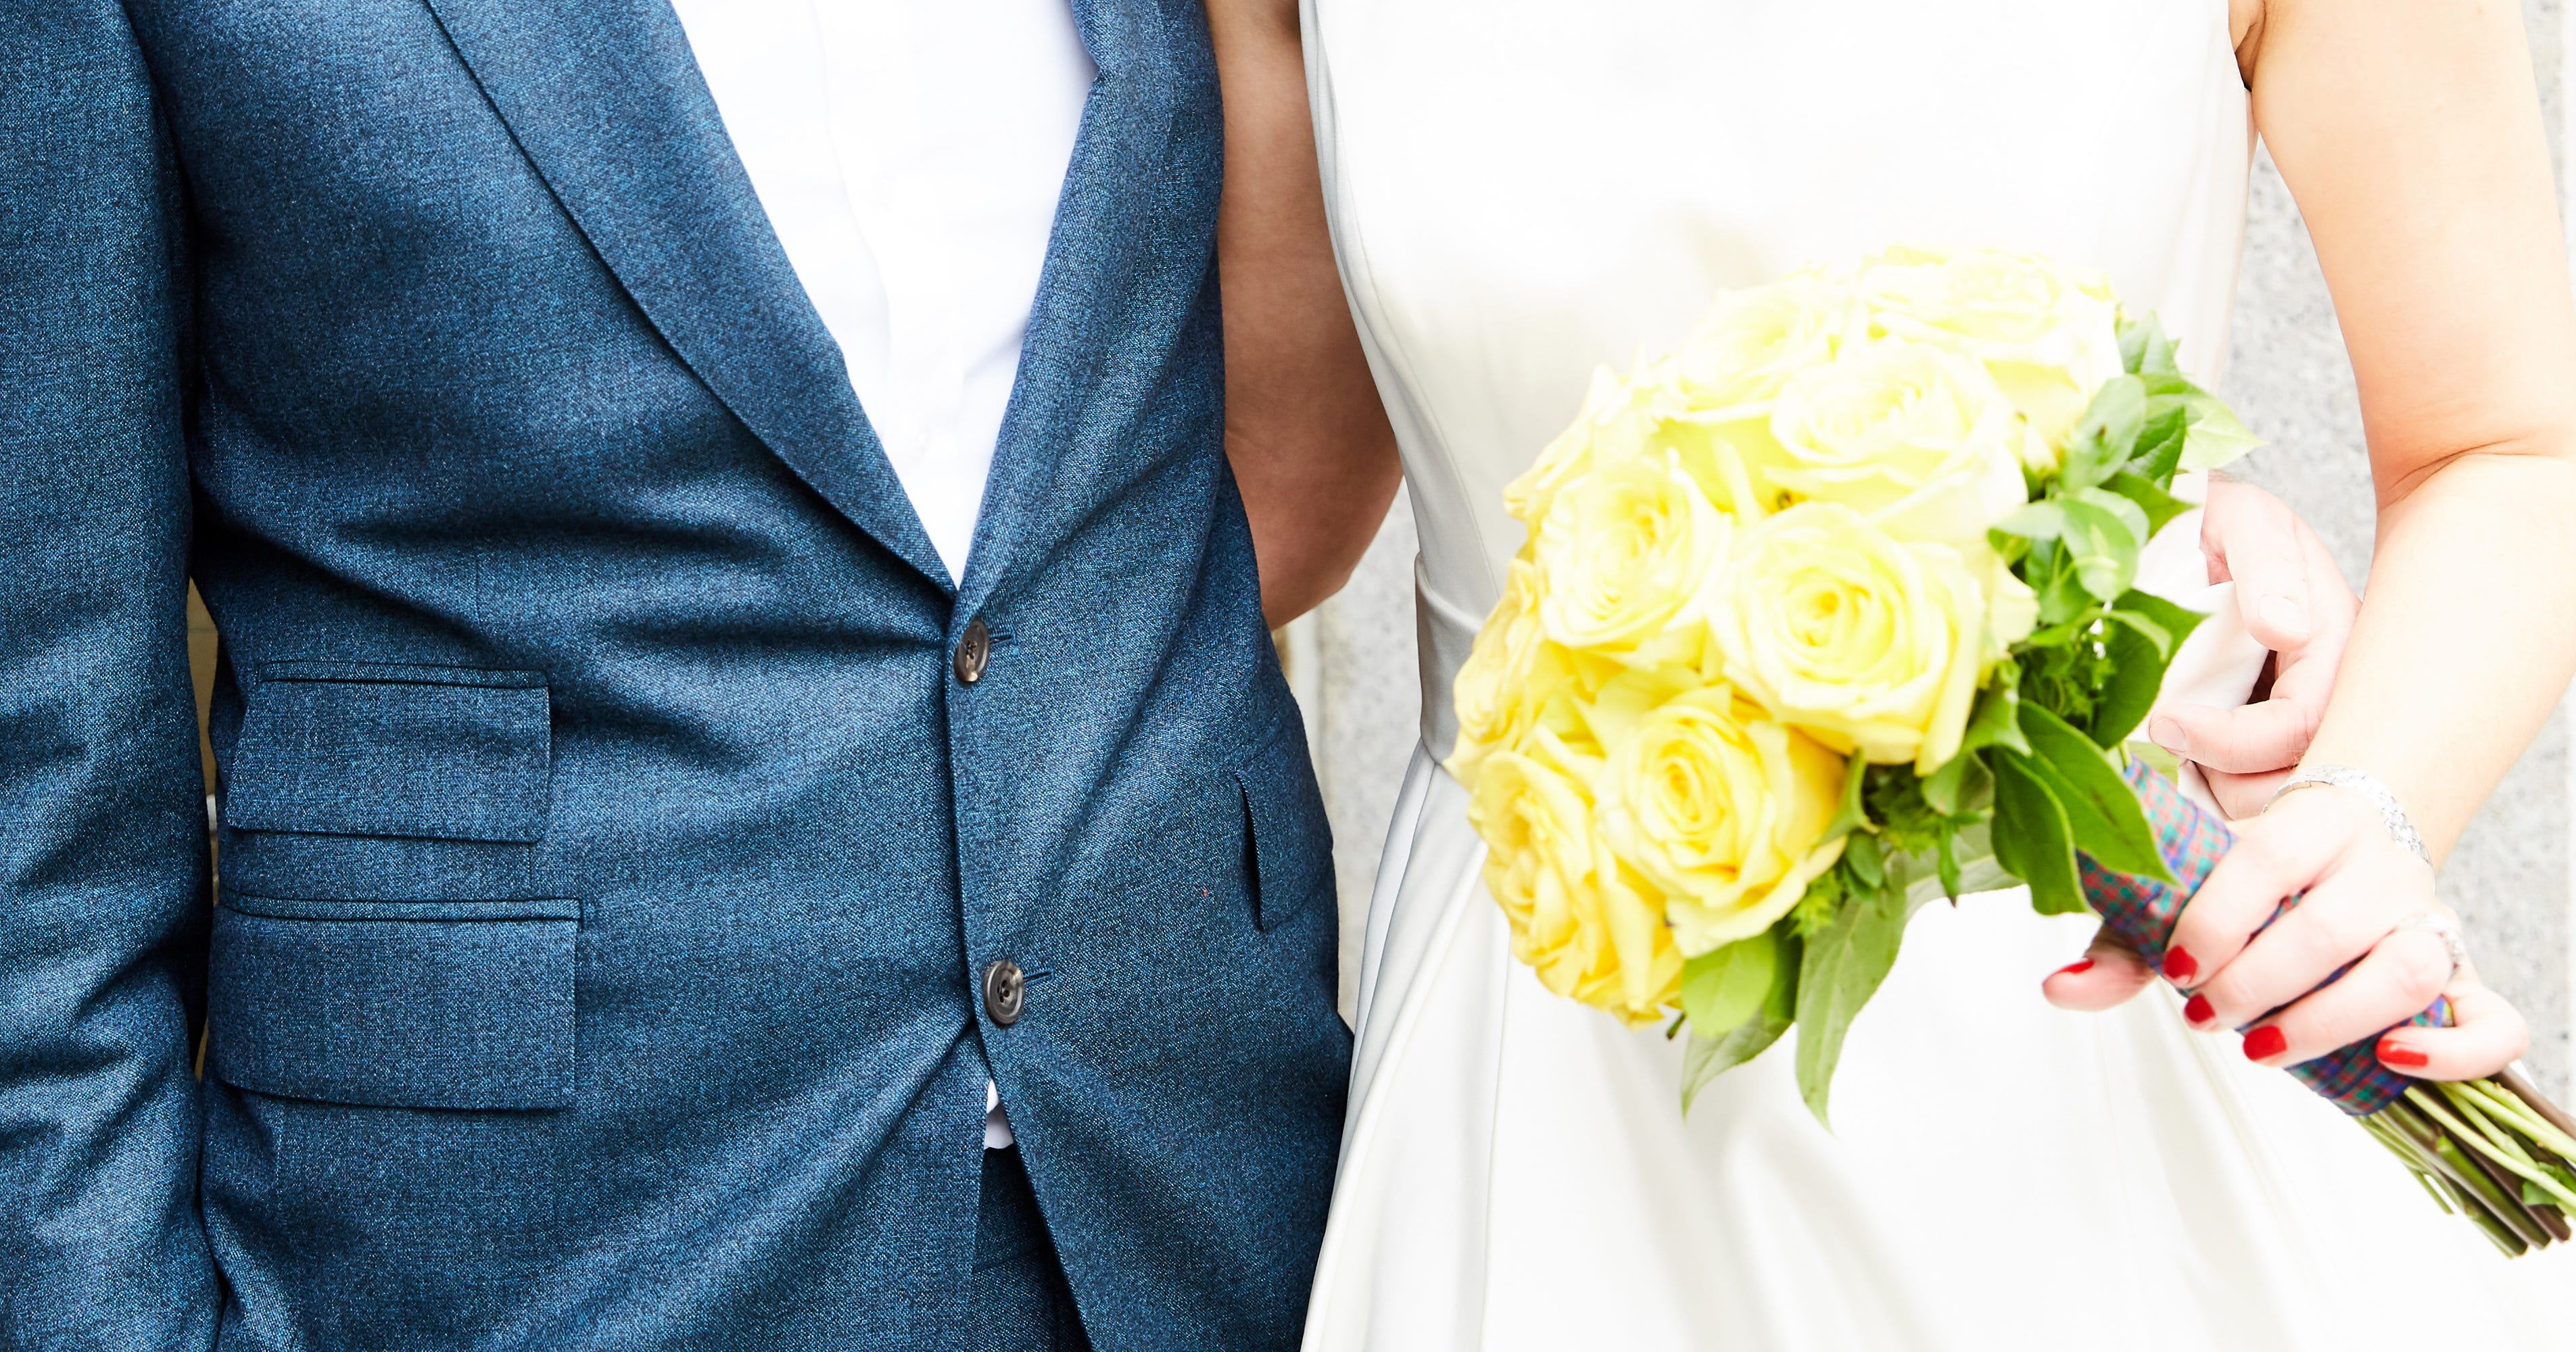 You Won't Believe What This Husband Gave His Wife For Their 20th Wedding Anniversary